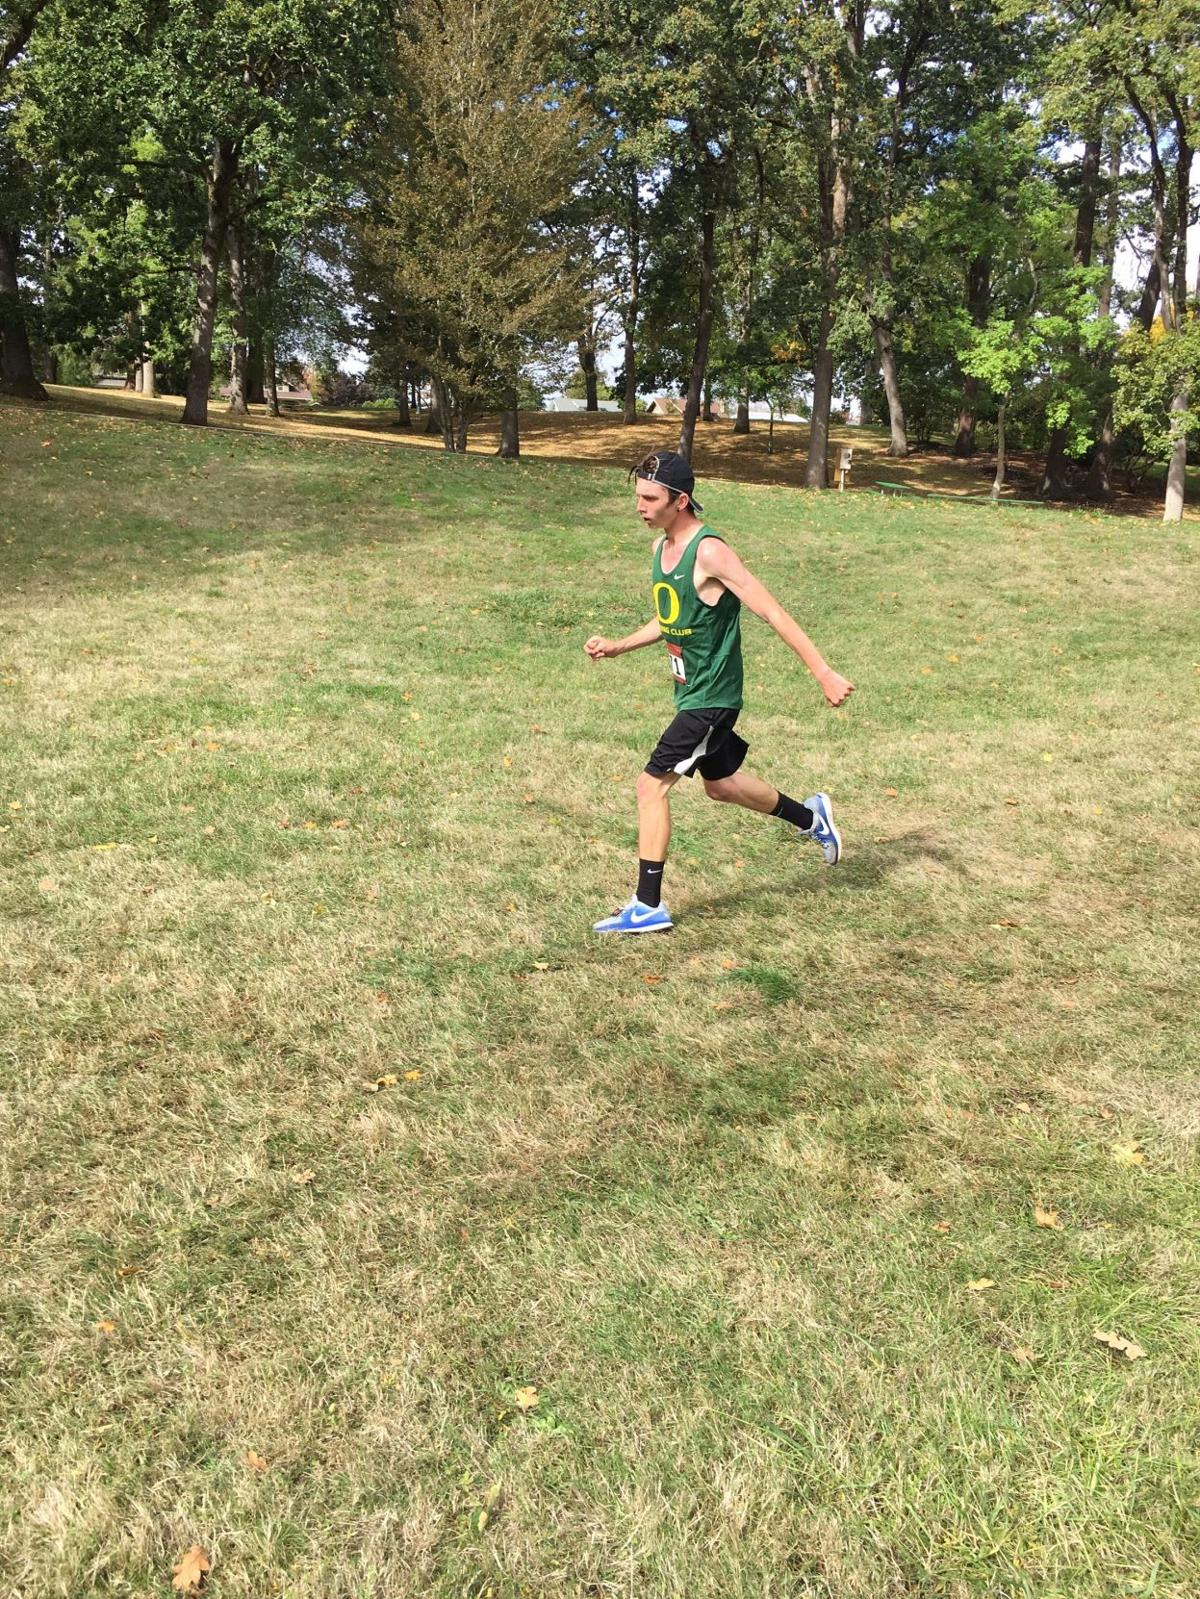 A lifelong race: Justin Gallegos doesn't let Cerebral Palsy keep him from running